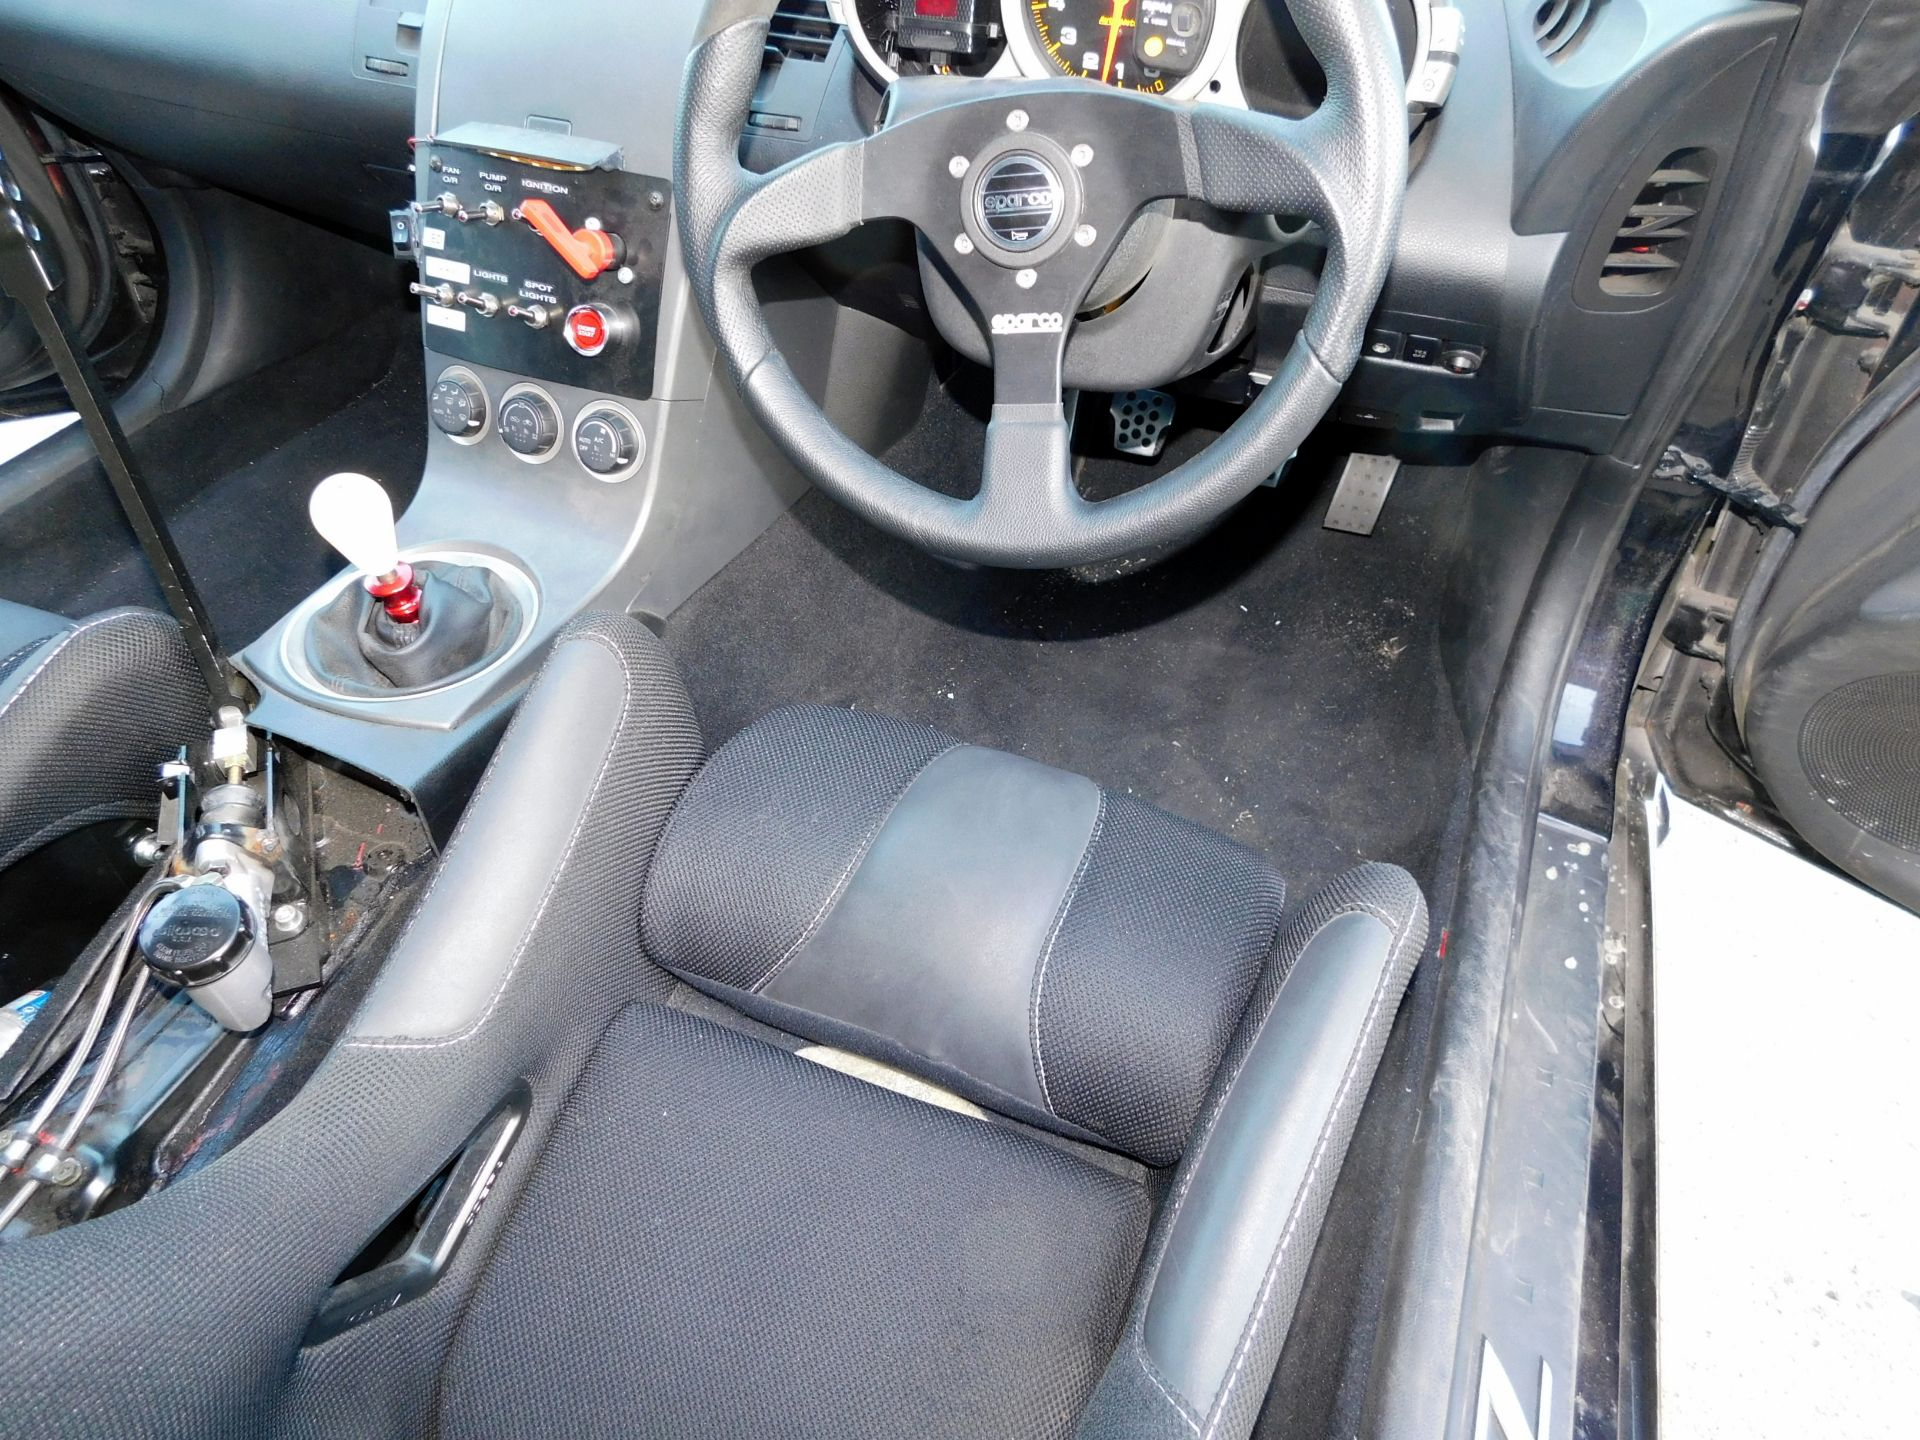 """Nissan 350z 2 door Coupe Original Picture Car From """"Fast & Furious 3""""* ,LS3 V8 6.2 Litre Engine, - Image 13 of 16"""